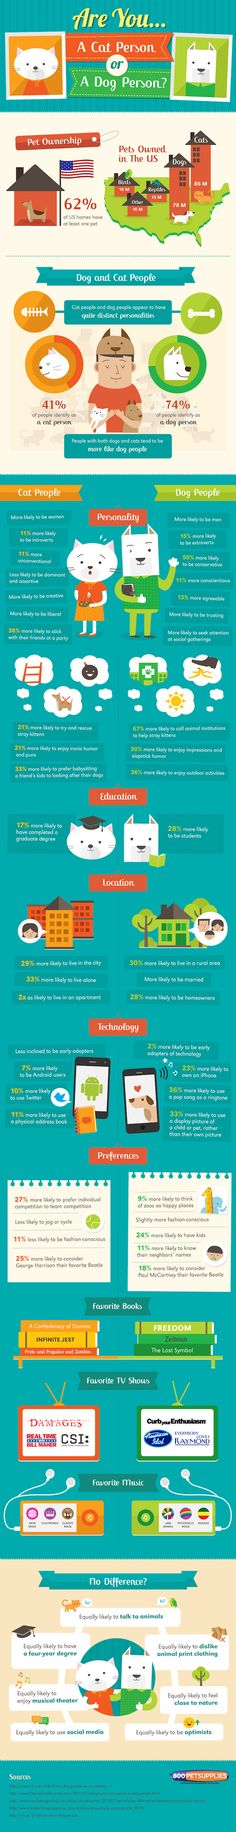 Are you a dog or a cat person? Find it out with this infographic